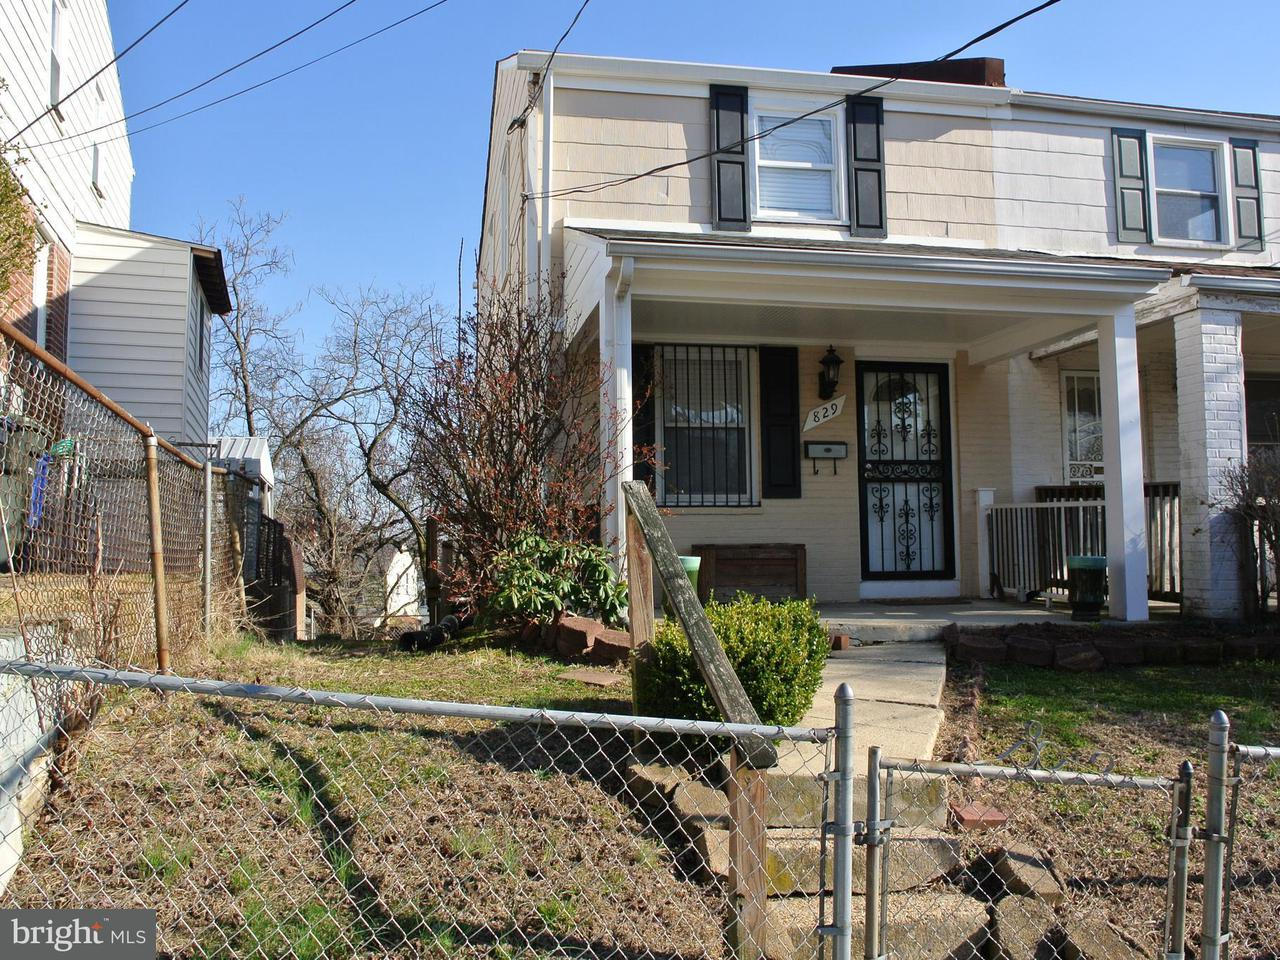 Other Residential for Rent at 829 51st St NE Washington, District Of Columbia 20019 United States